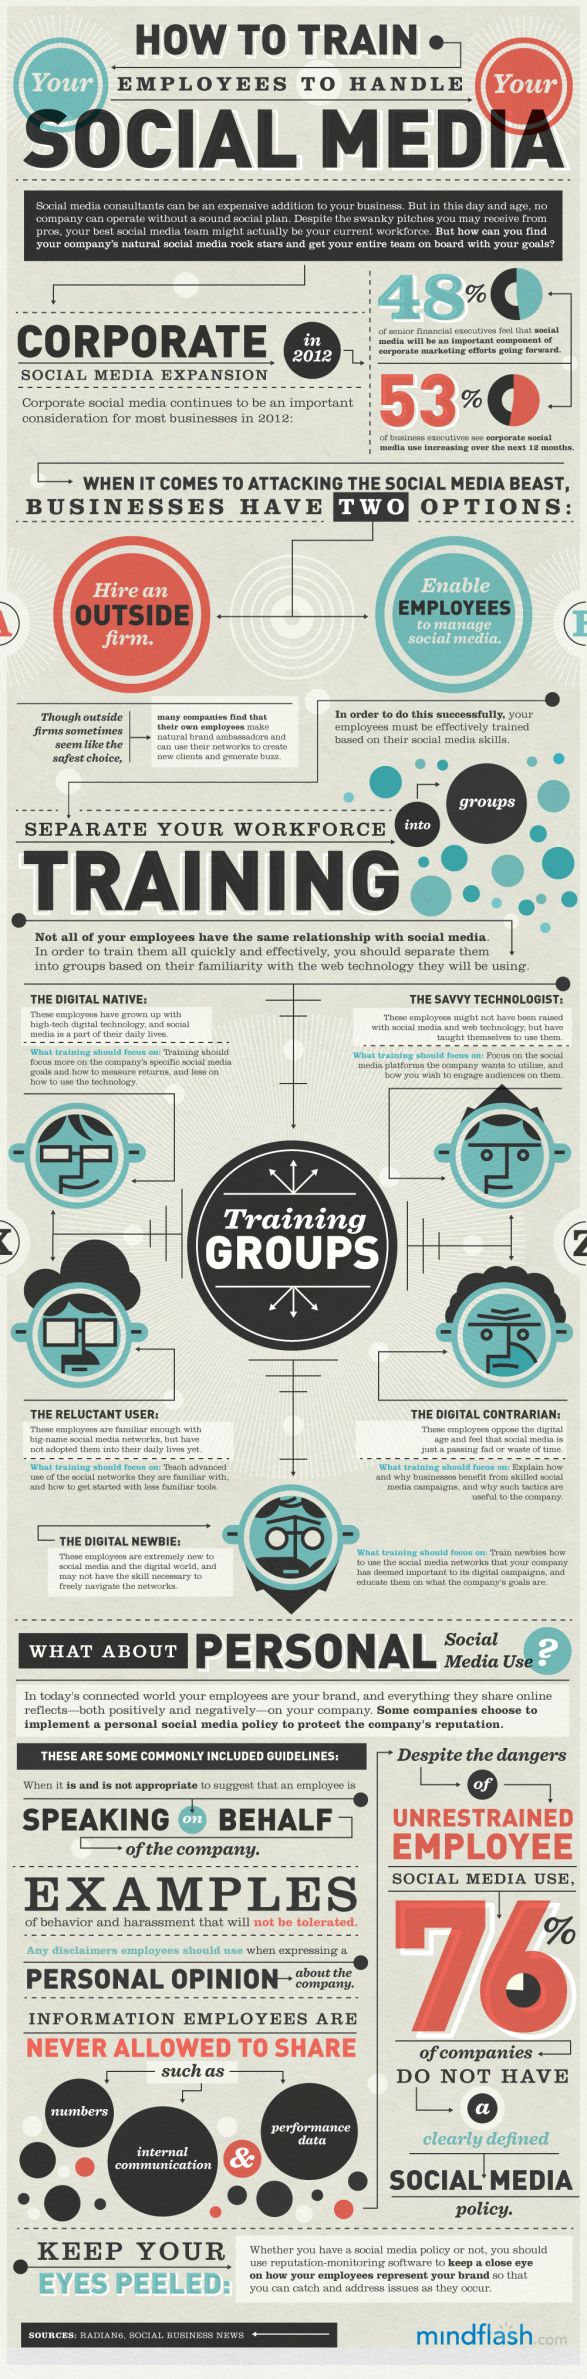 How to Train Employees On Social Media | Visual.ly - via http://bit.ly/epinner